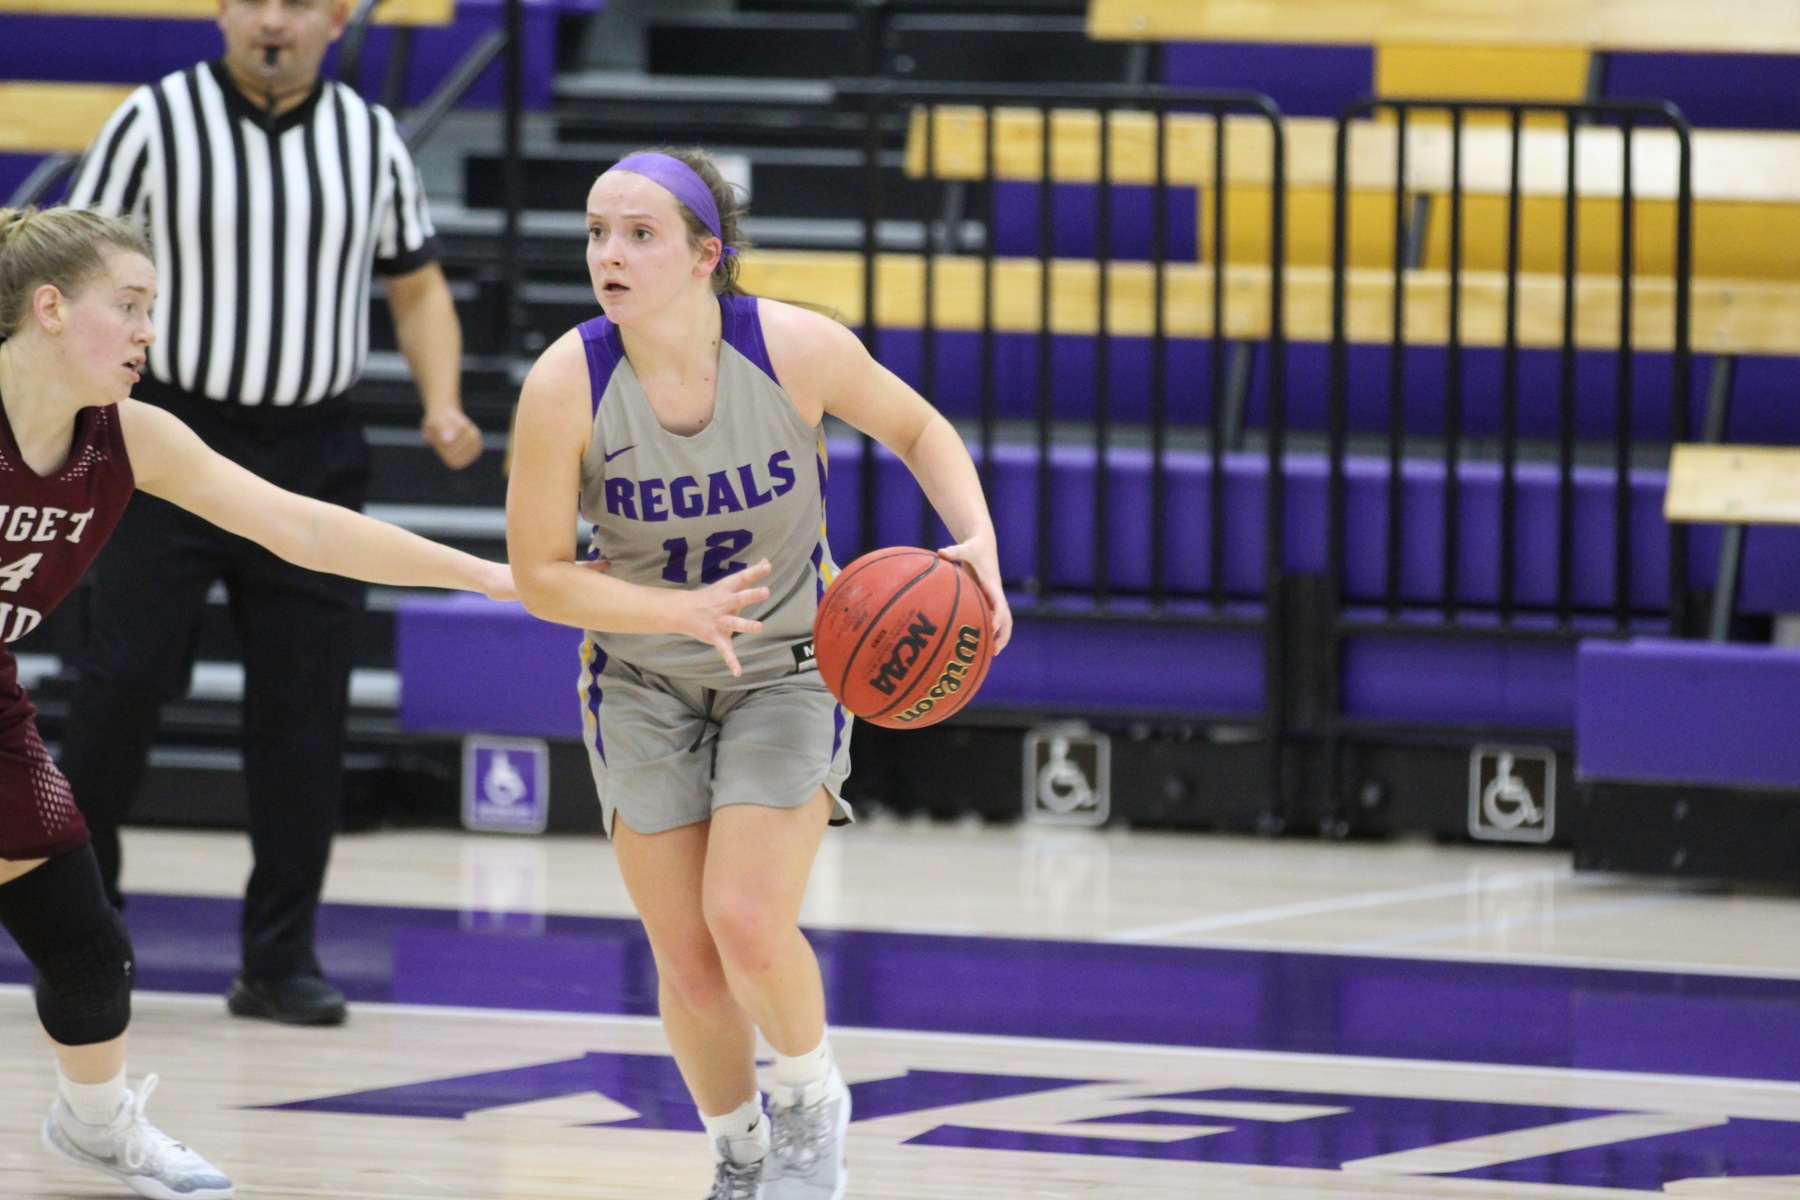 Regals Suffer Heartbreaking Loss in Home Opener